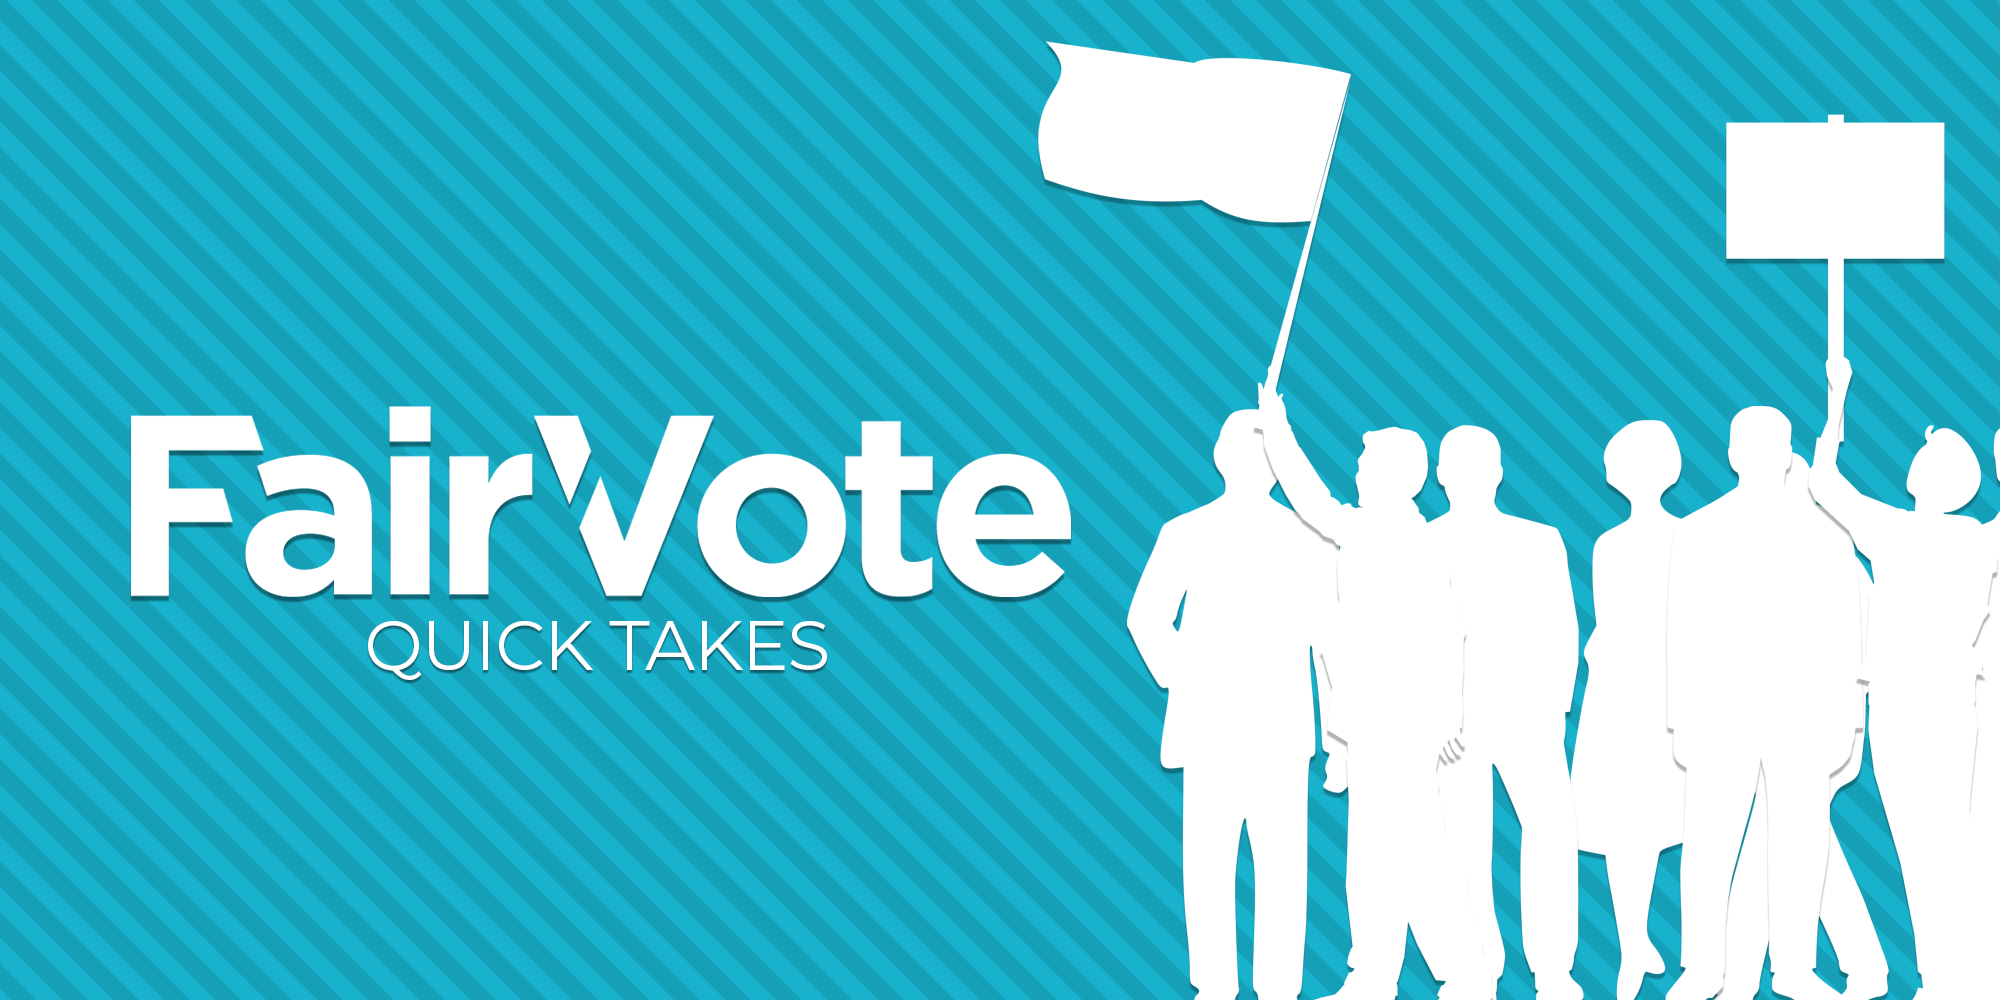 FairVote supports the John Lewis Voting Rights Advancement Act